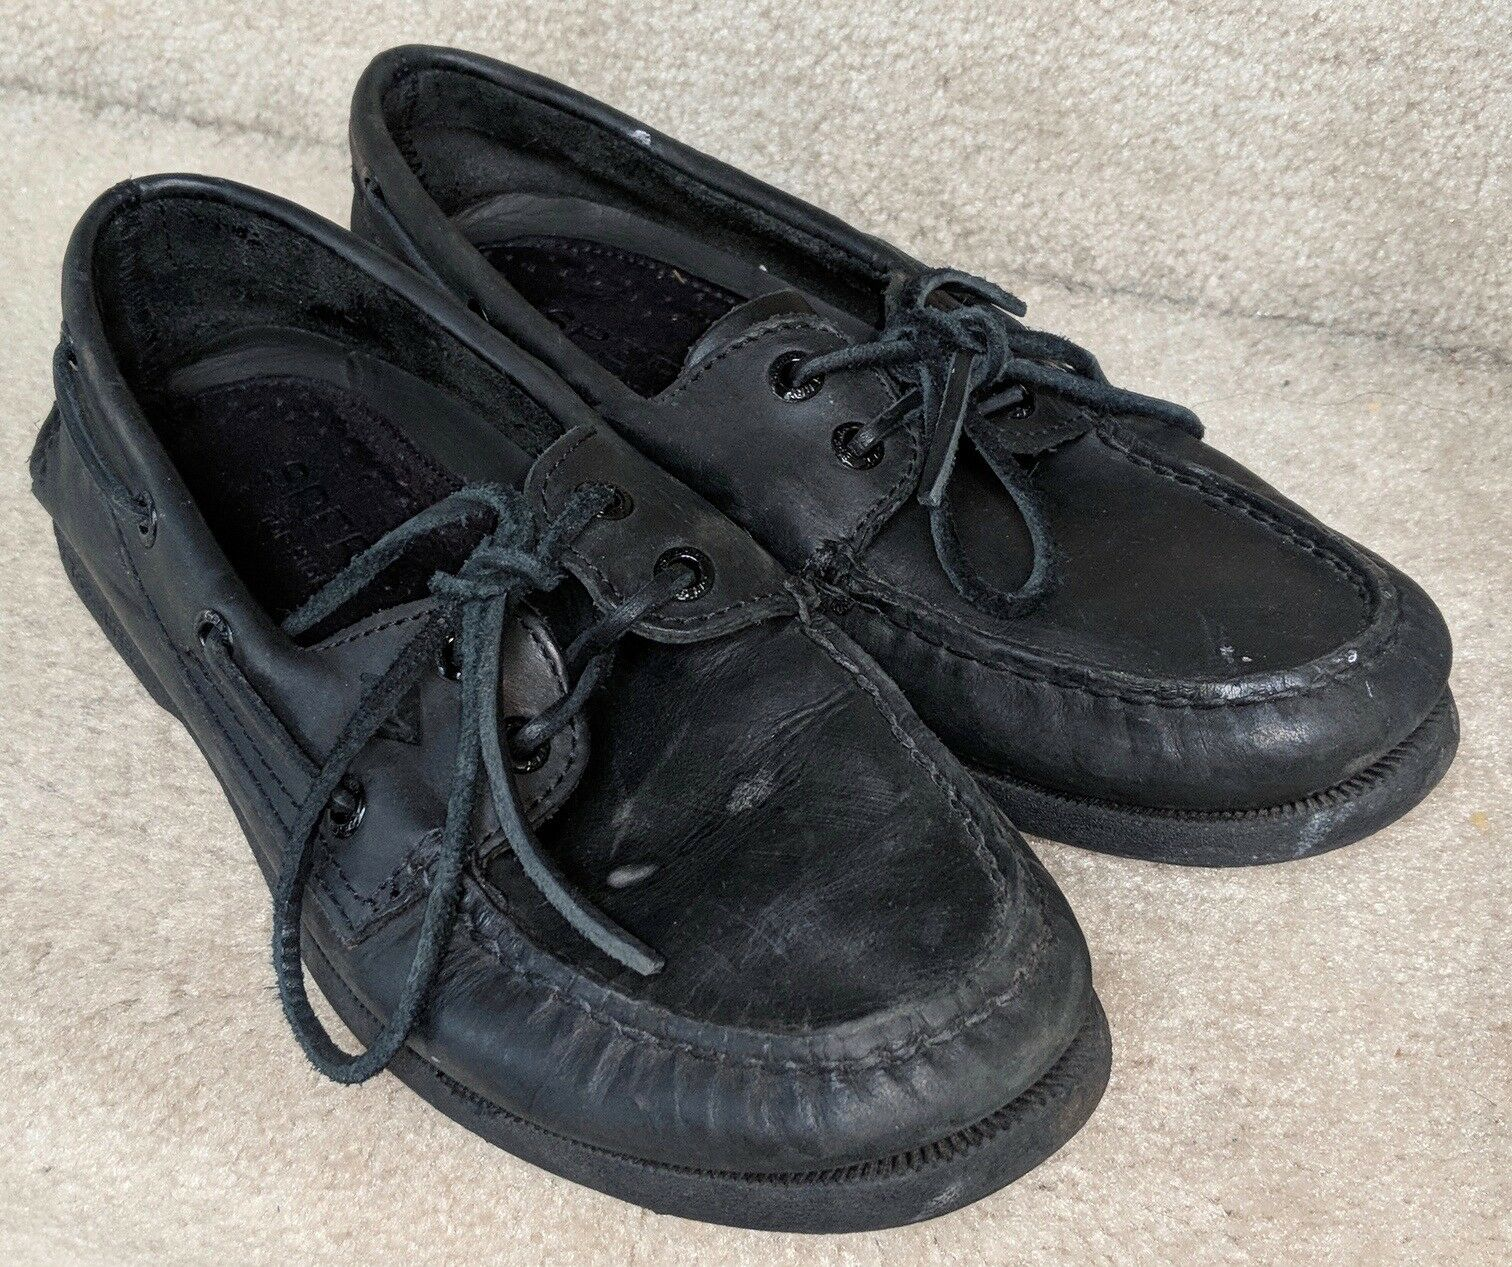 Mens Sperry Top-Sider Leather Original Boat Shoe Black Leather Top-Sider Size 7.5M 62d3b4